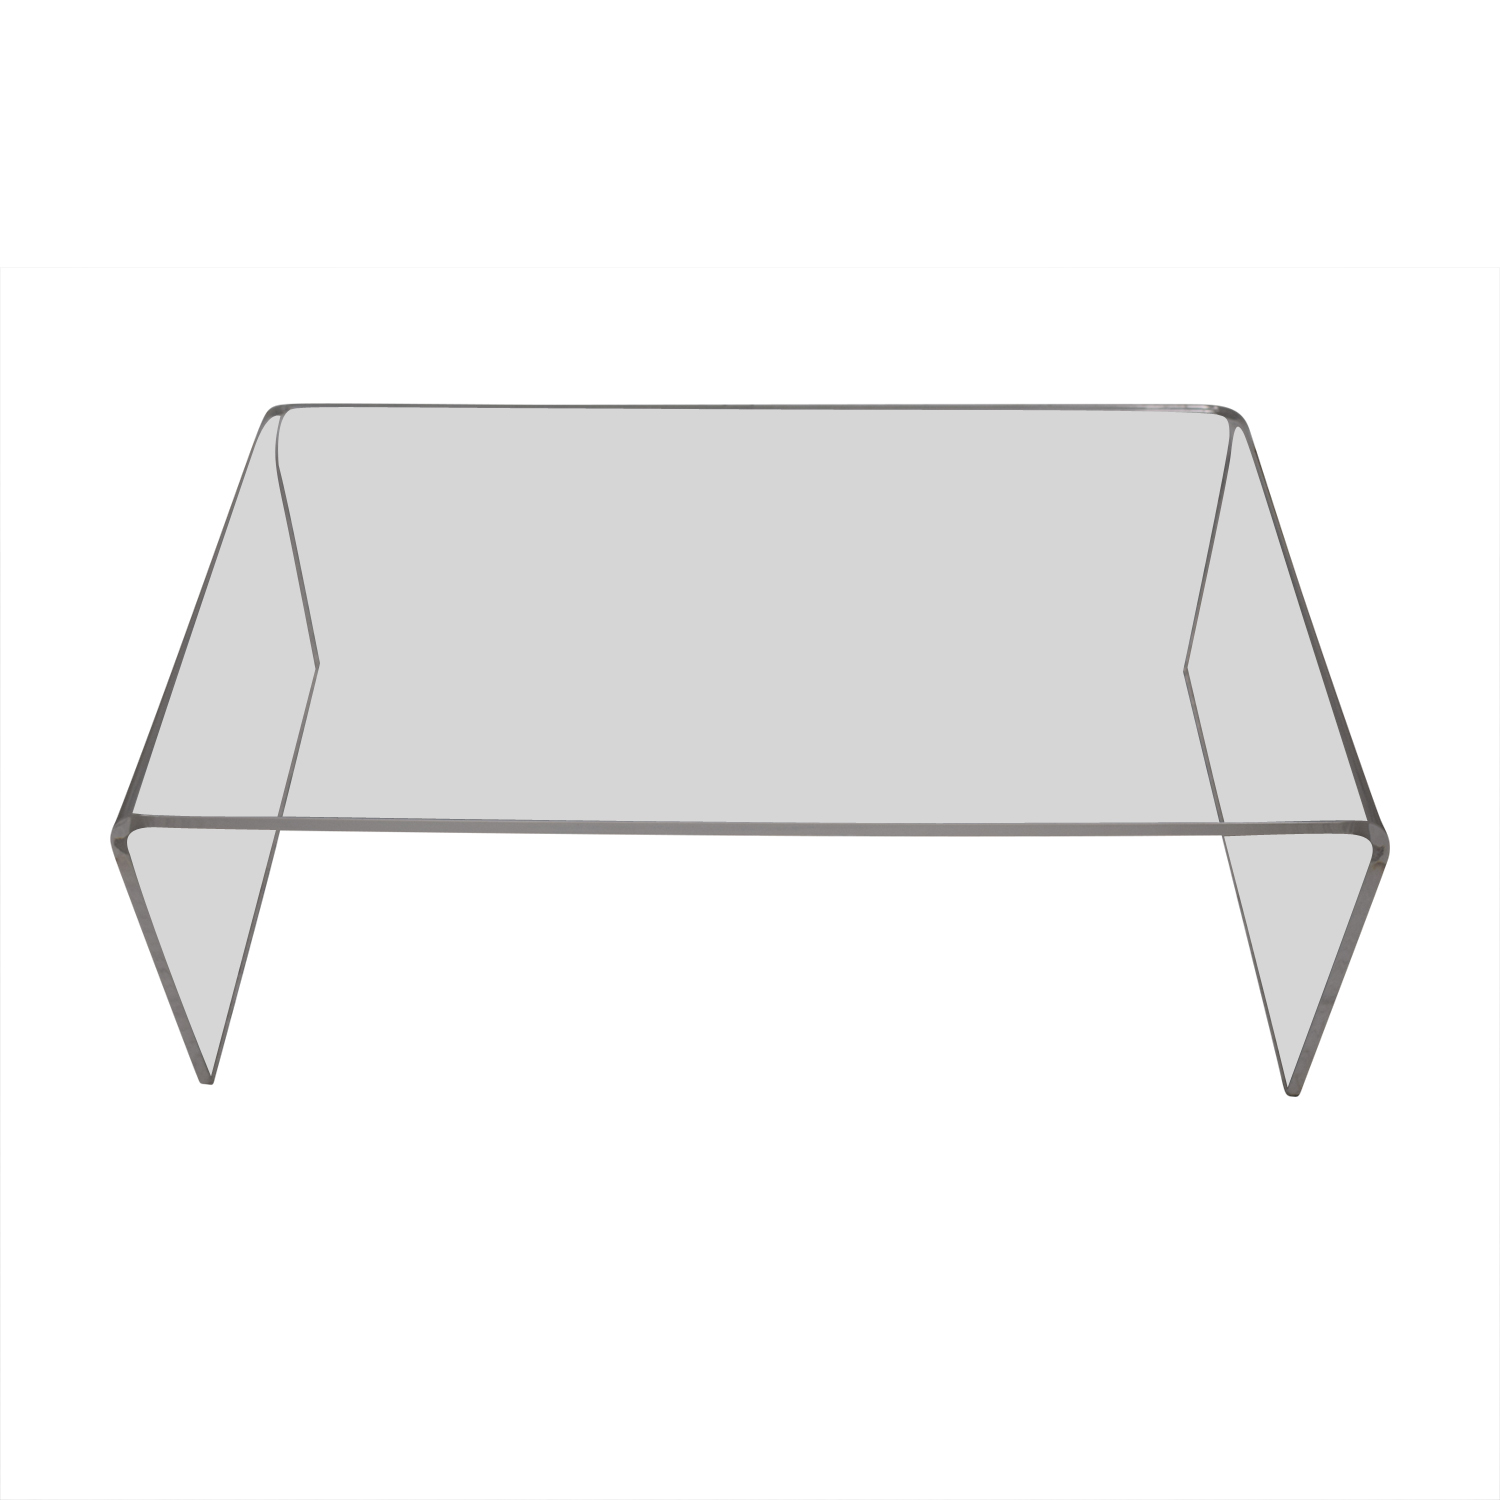 buy CB2 Peekaboo Acrylic Coffee Table CB2 Tables